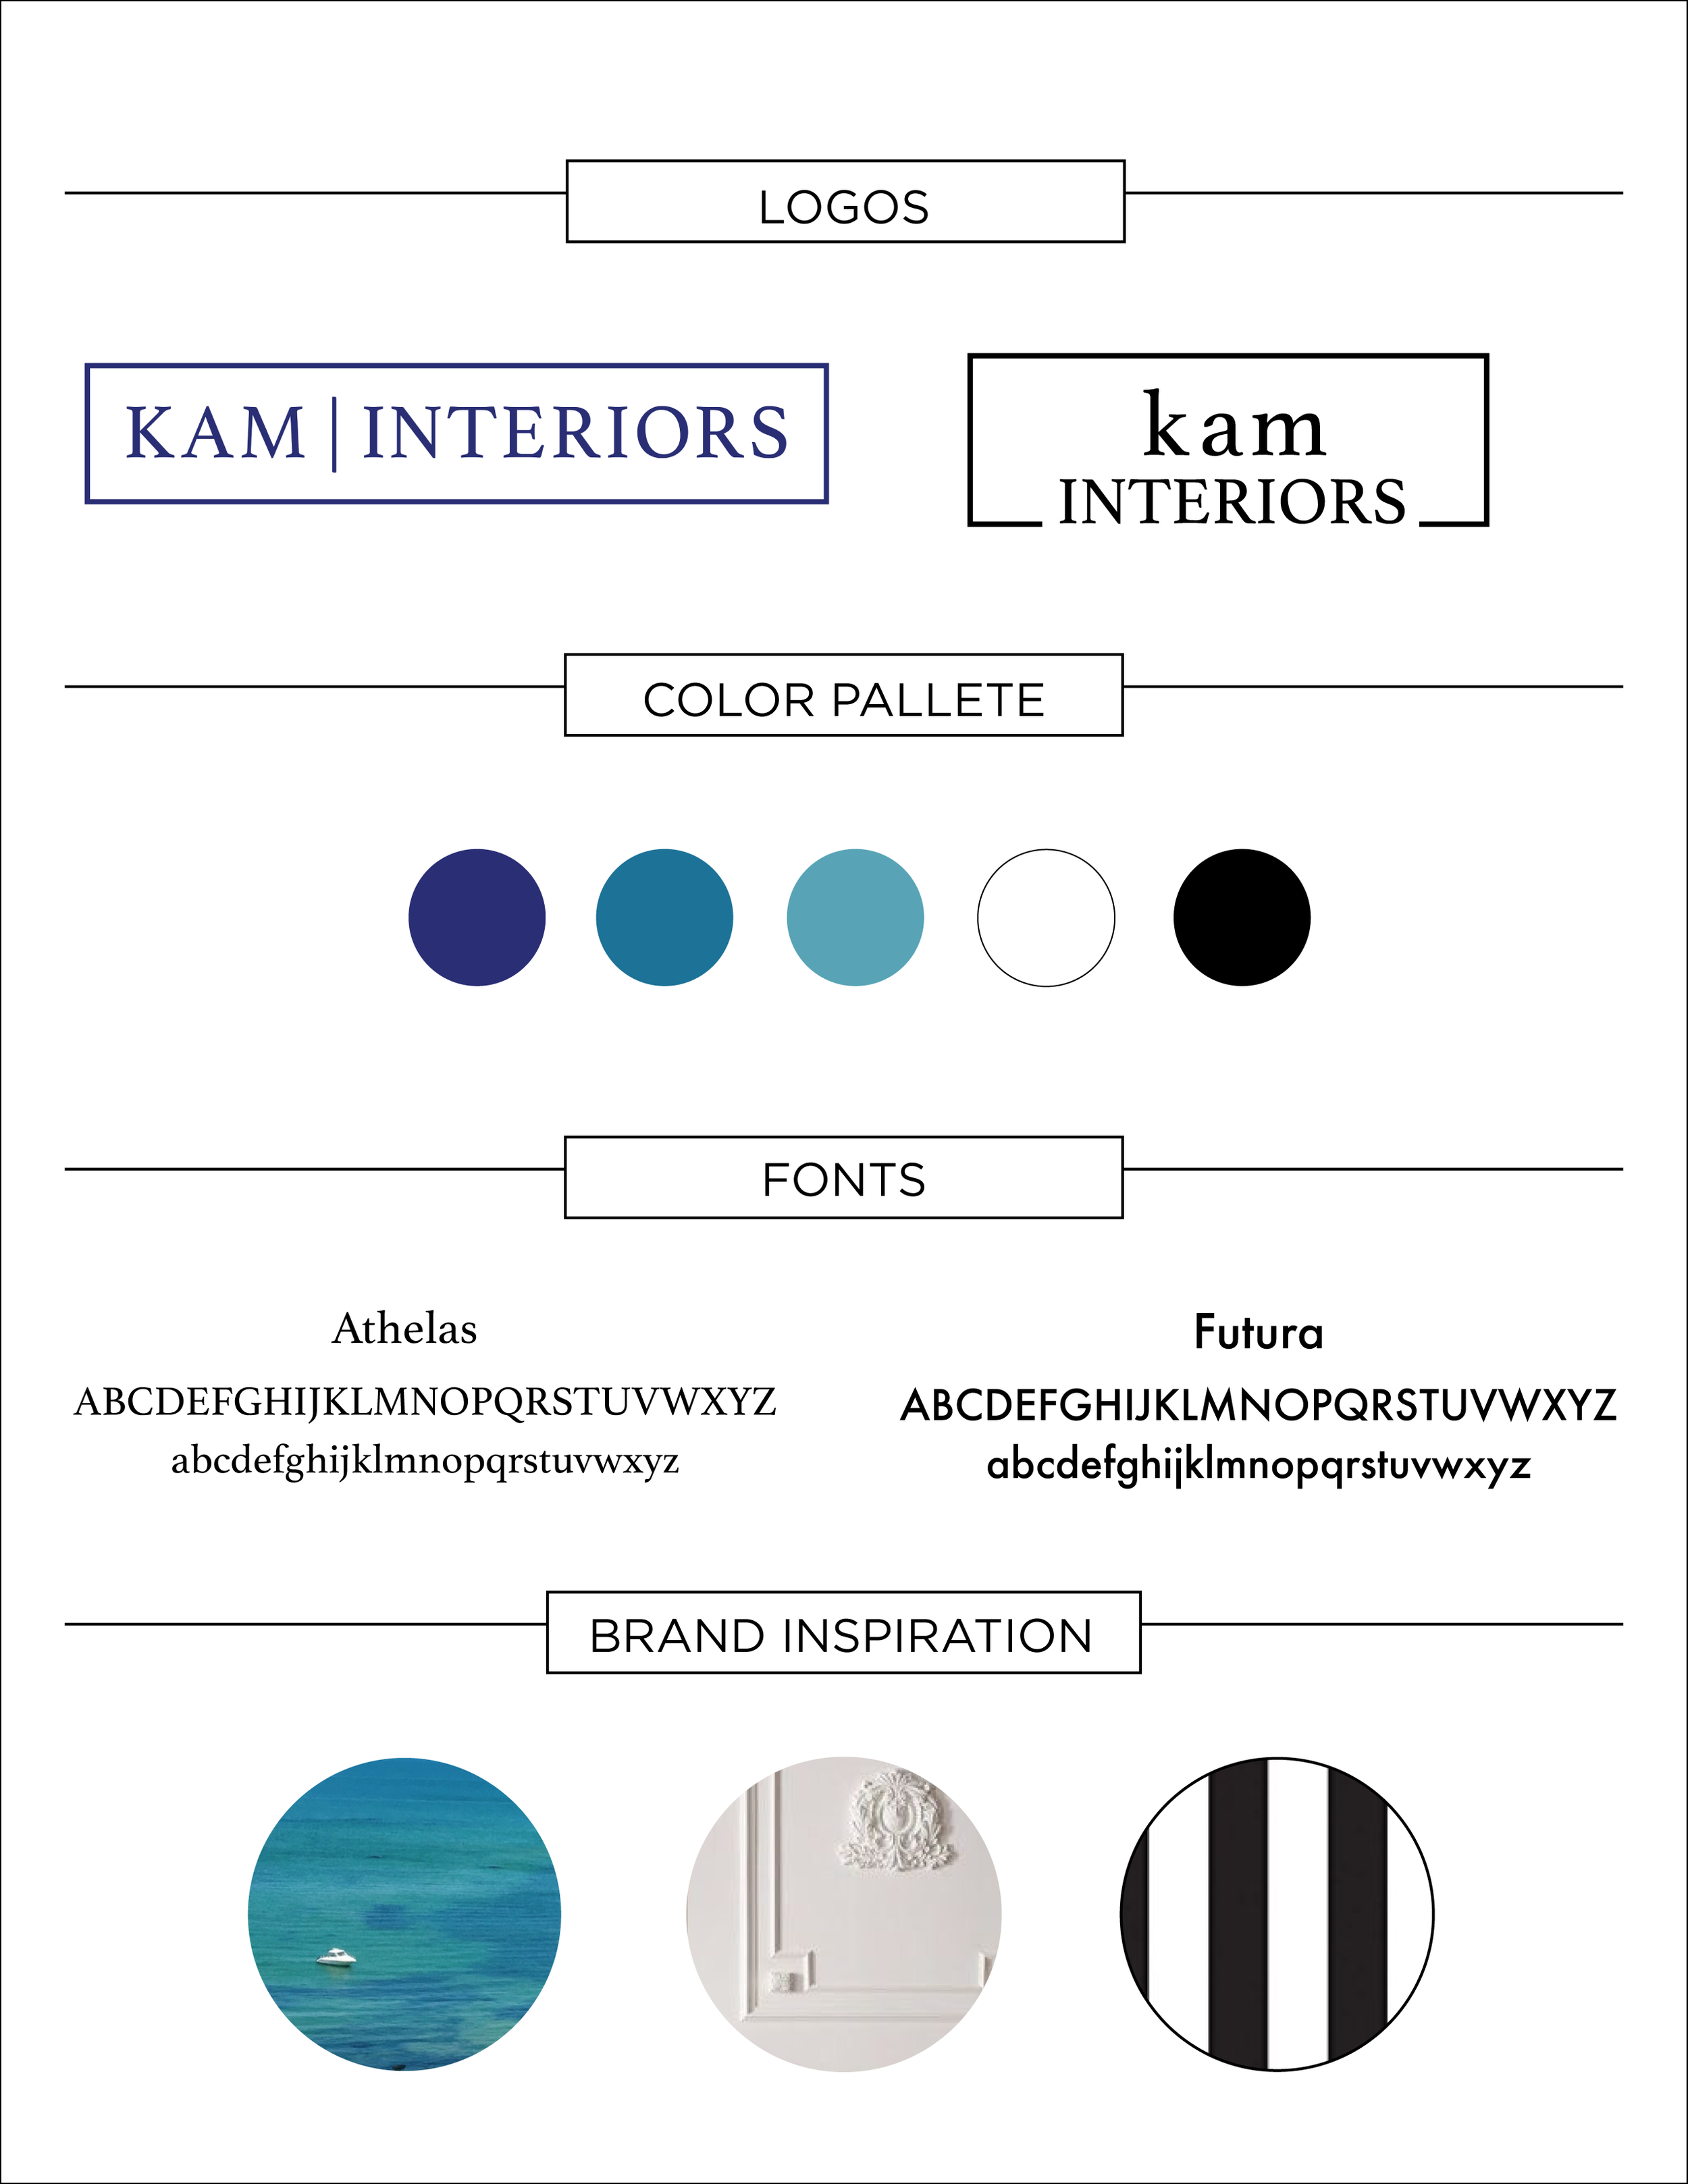 KAM Interiors Branding Guide - When I began to work with KAM Interiors we identified that the beaches in Martha's Vineyard were a huge source of inspiration for the designer. From there we discussed the style of design KAM intended to produce. With this information in mind I pulled colors from Gay Head in Martha's Vineyard and kept the logo design simple and clean.